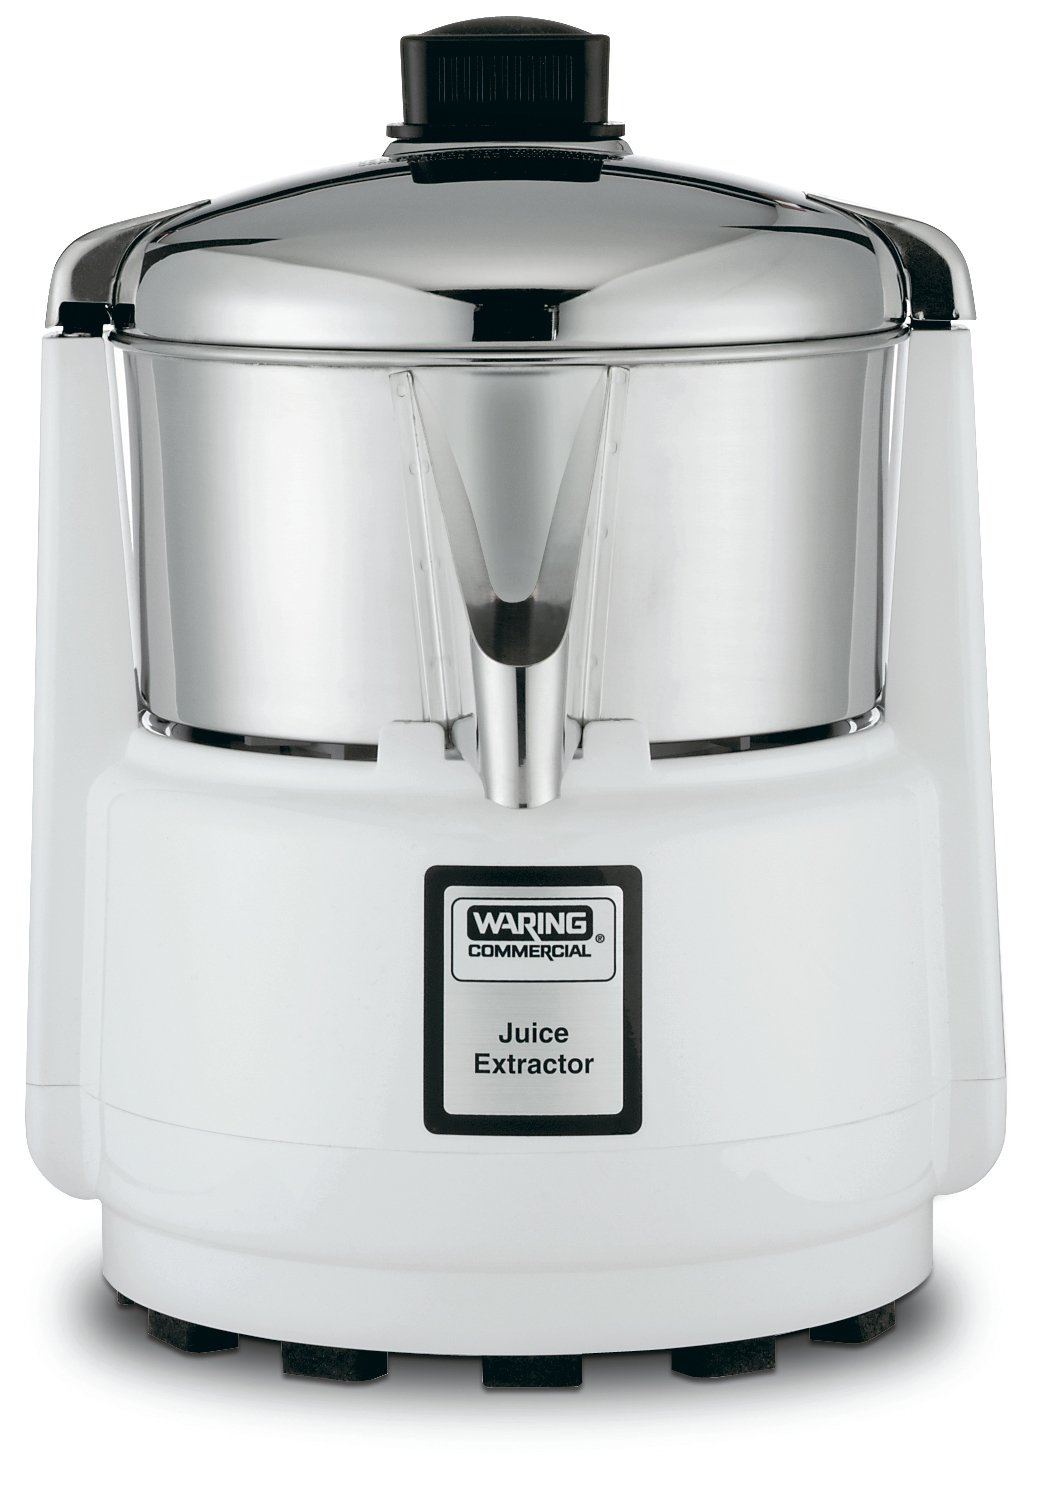 Waring Commercial 6001C Heavy-Duty Bar Juice Extractor with Compact Design